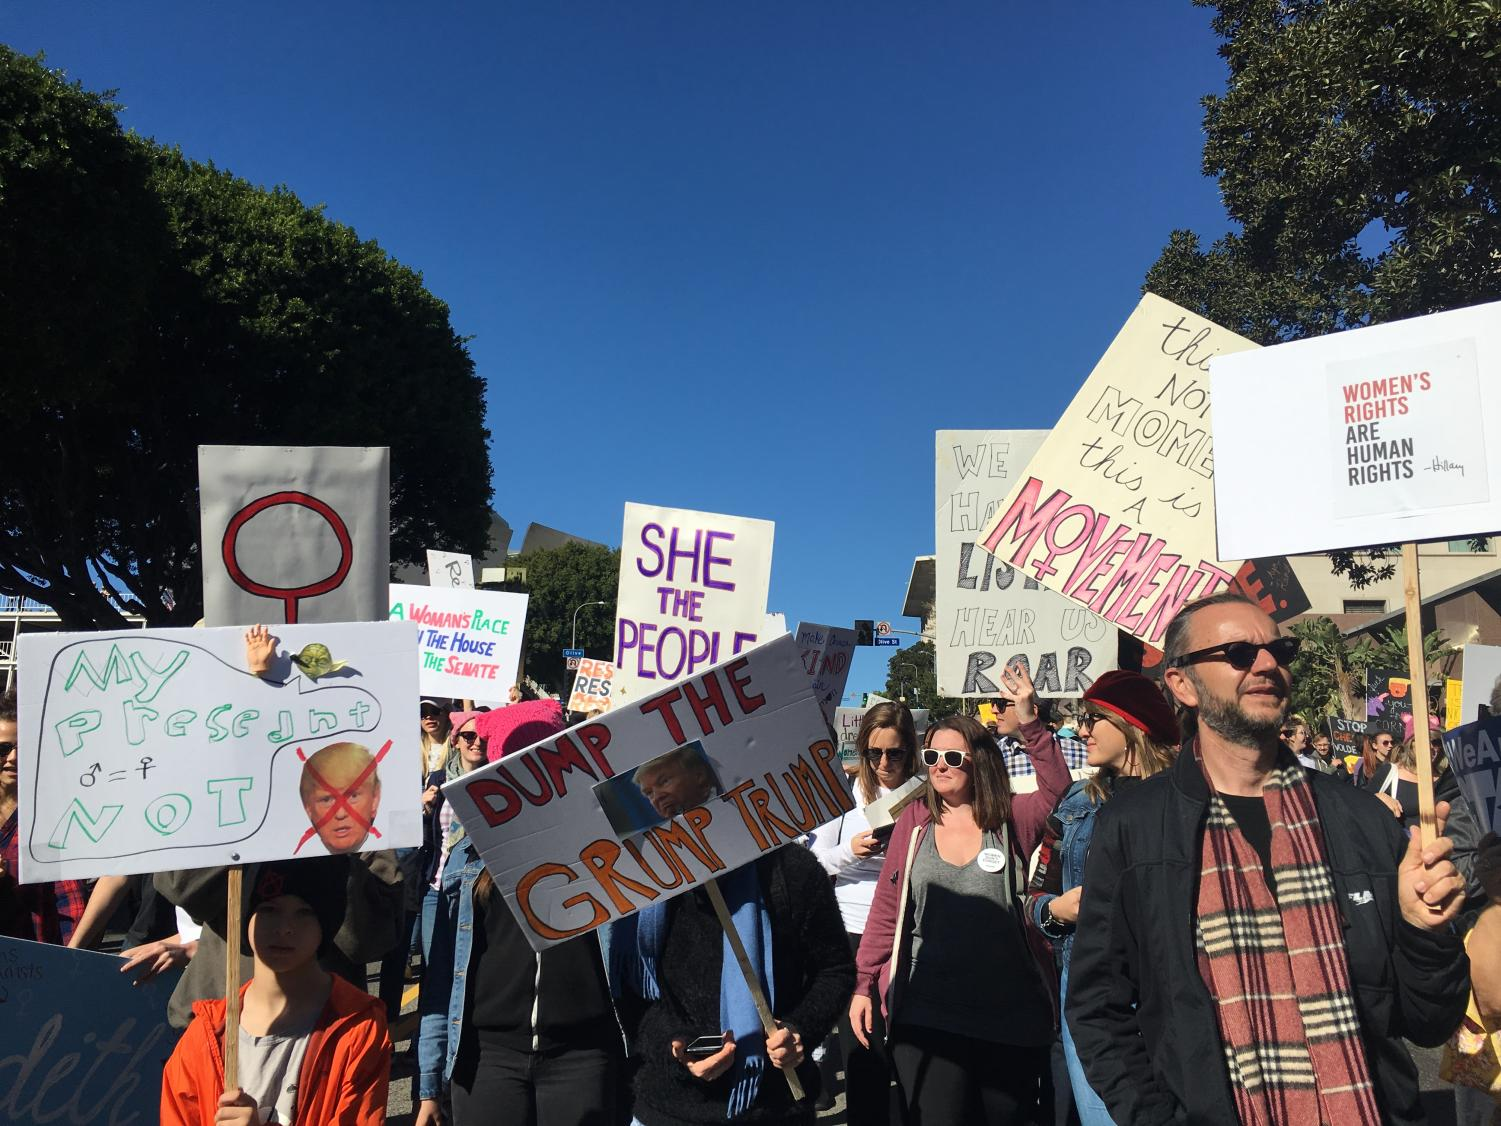 The+Women%27s+March+in+Los+Angeles+was+held+on+Jan.+20%2C+2018+at+Pershing+Square.+There+were+marches+all+over+the+country.+